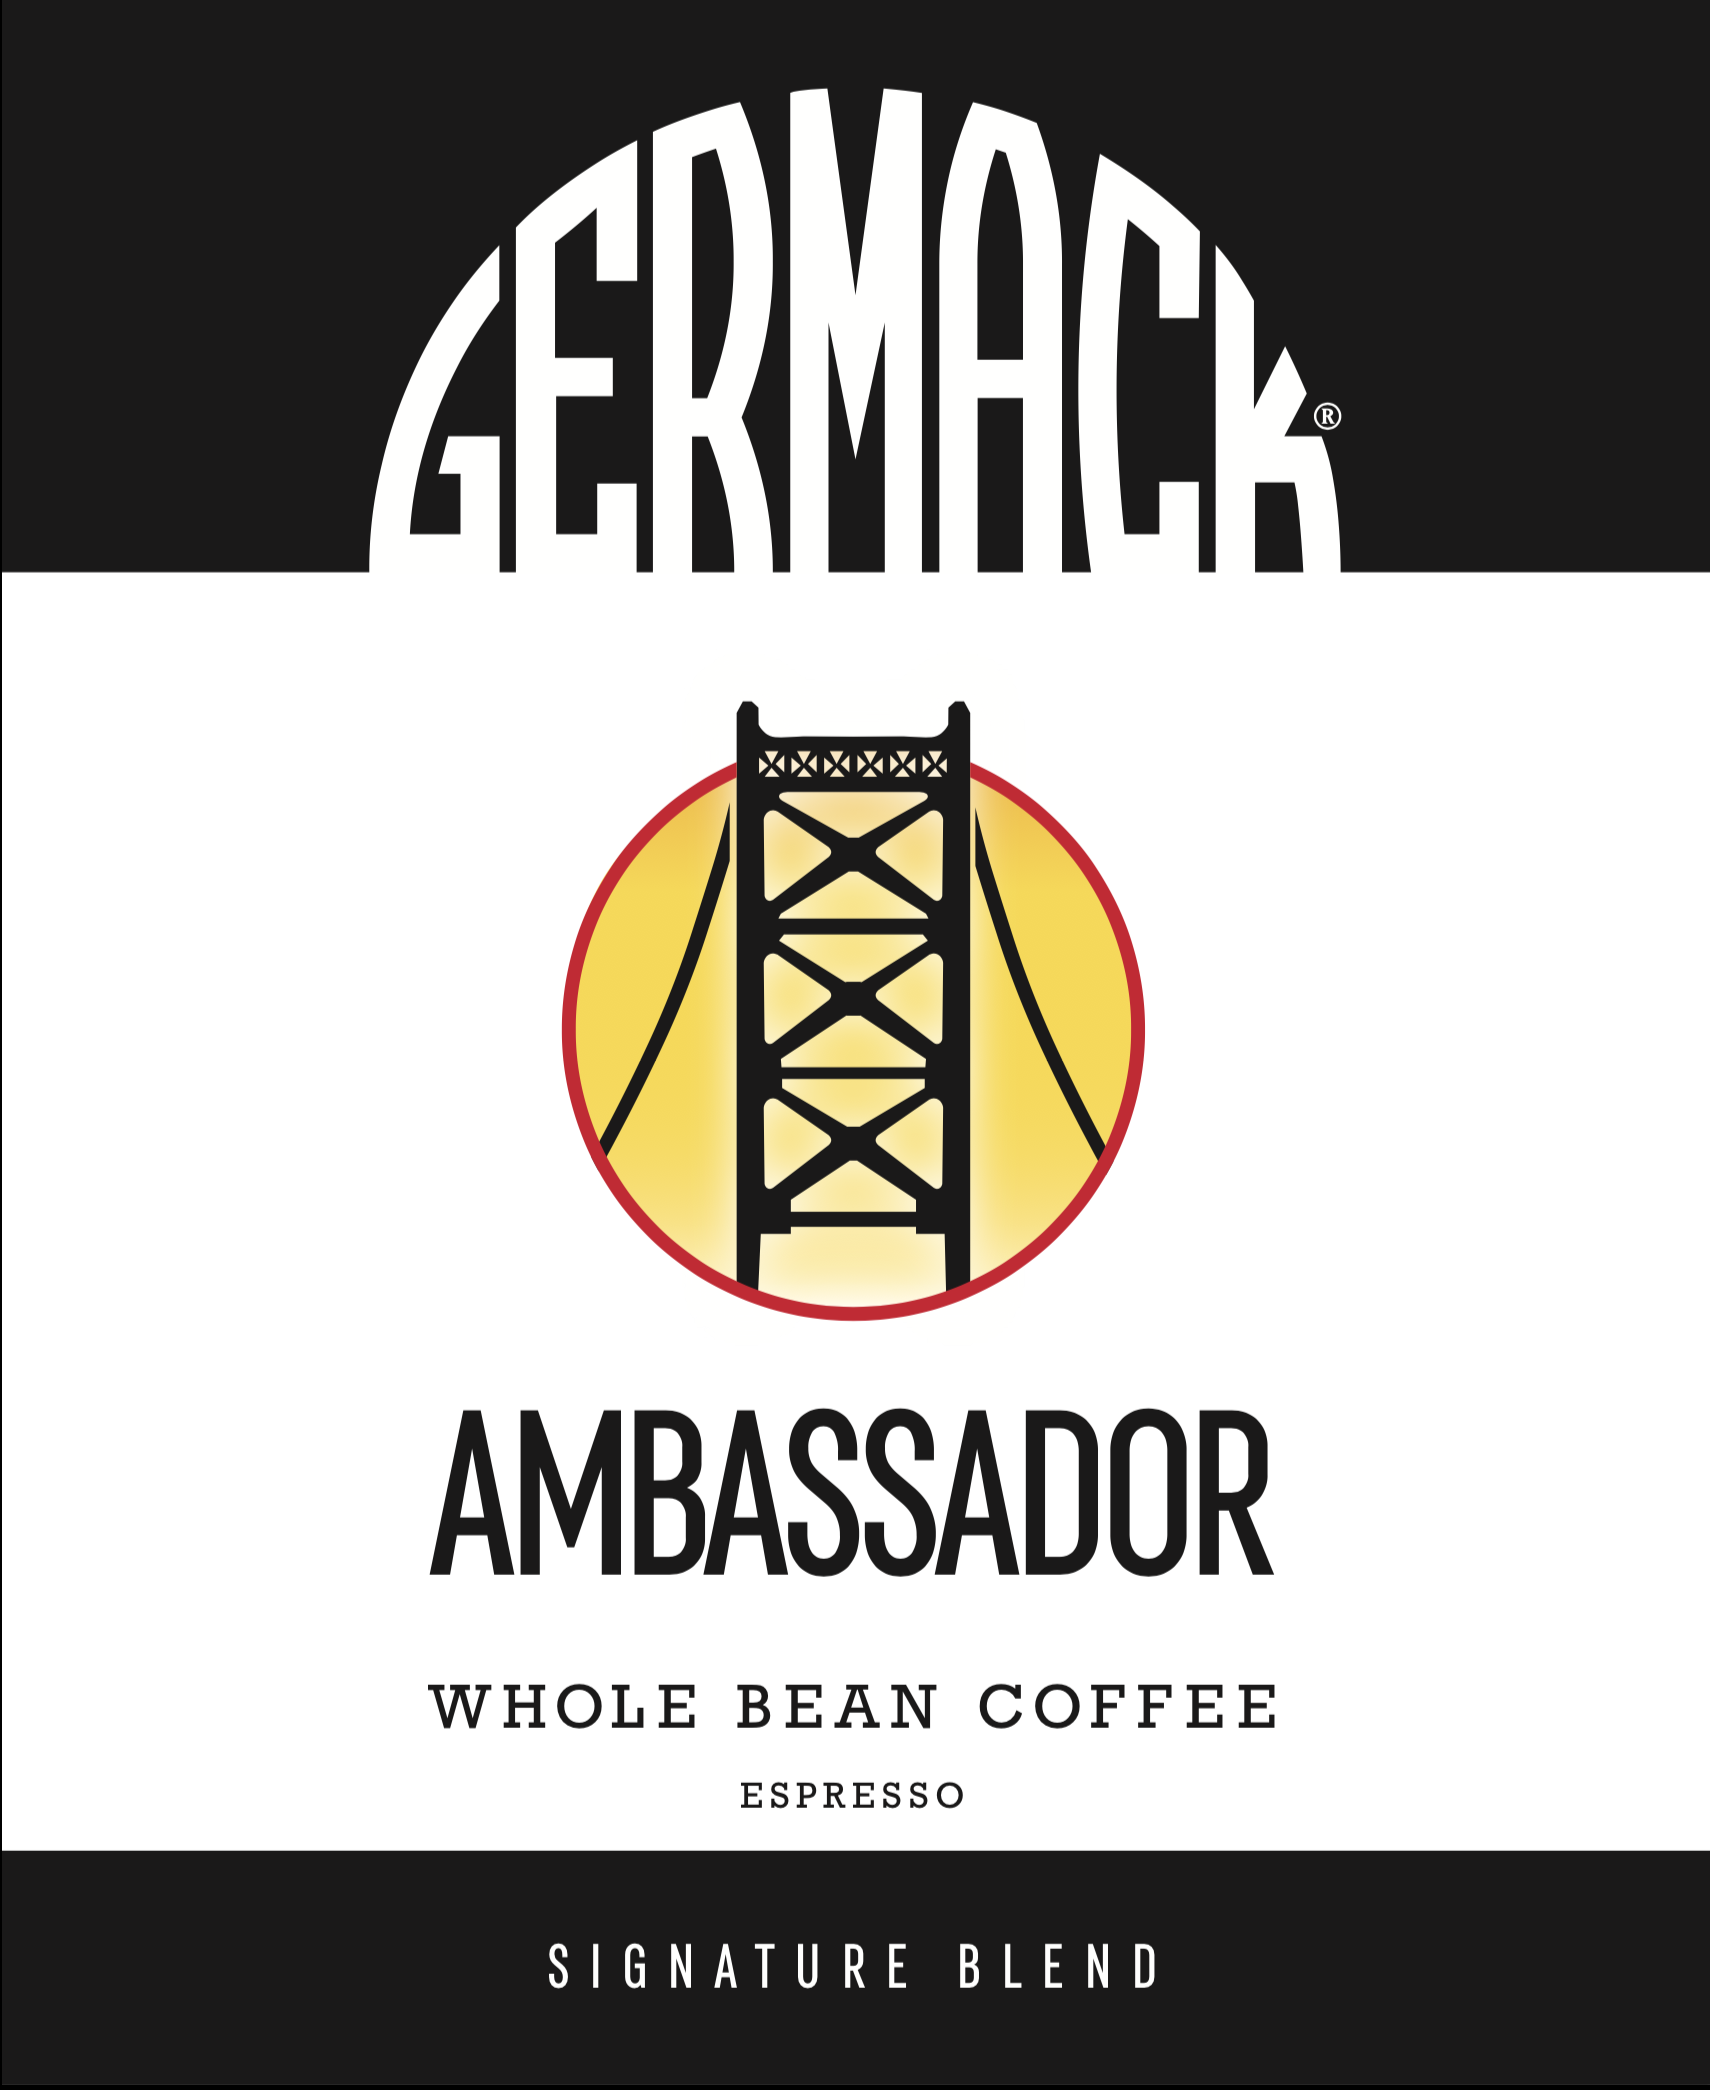 Picture Germack Coffee Blend (5 LB.) - Ambassador Espresso